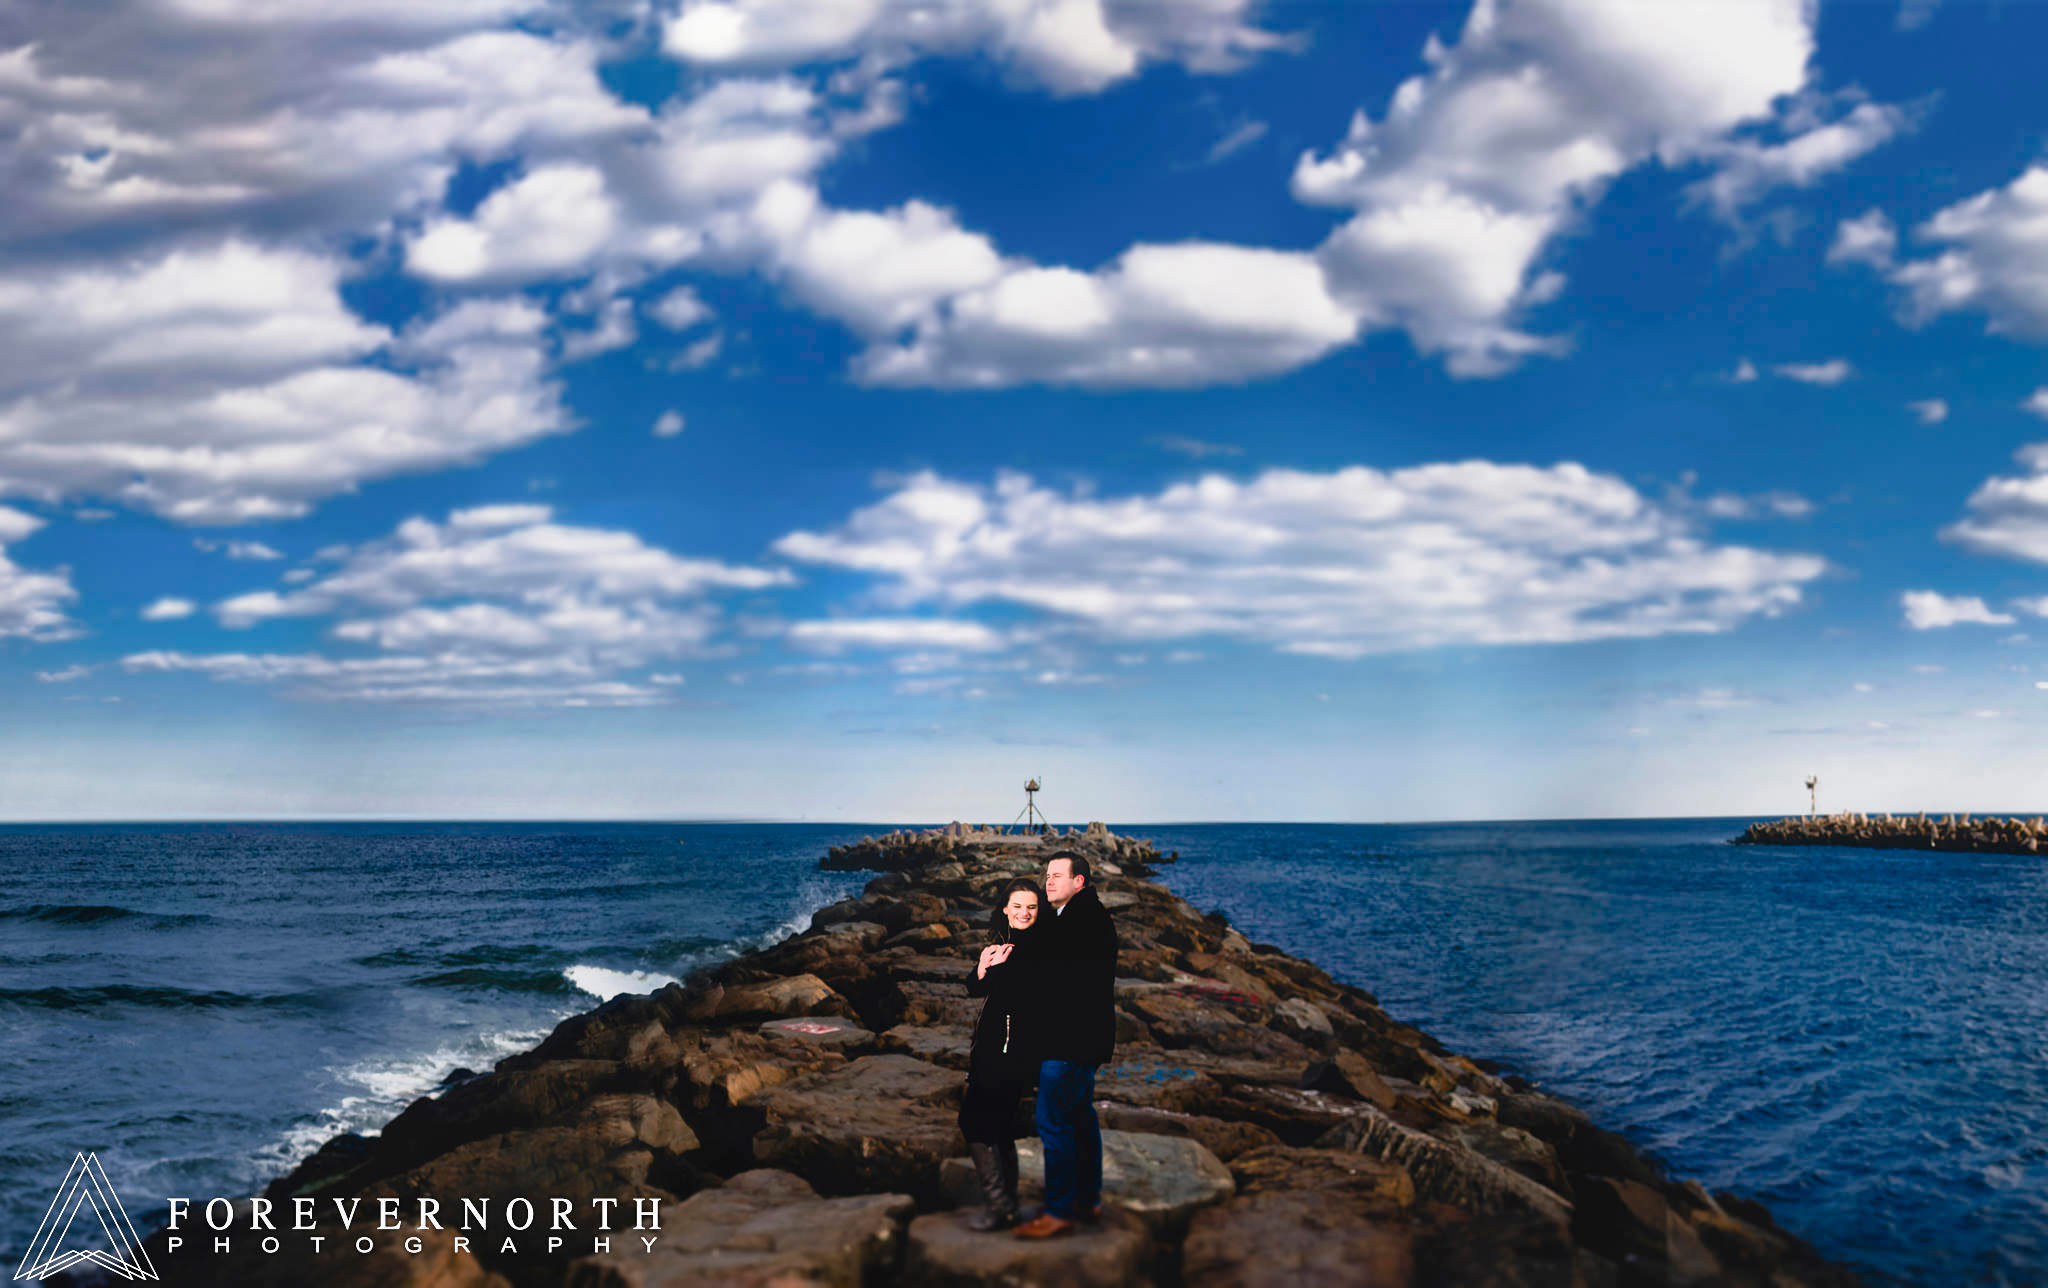 Schall-Forever-North-Photography-Proposal-Engagement-Photographer-Manasquan-Beach-33.JPG